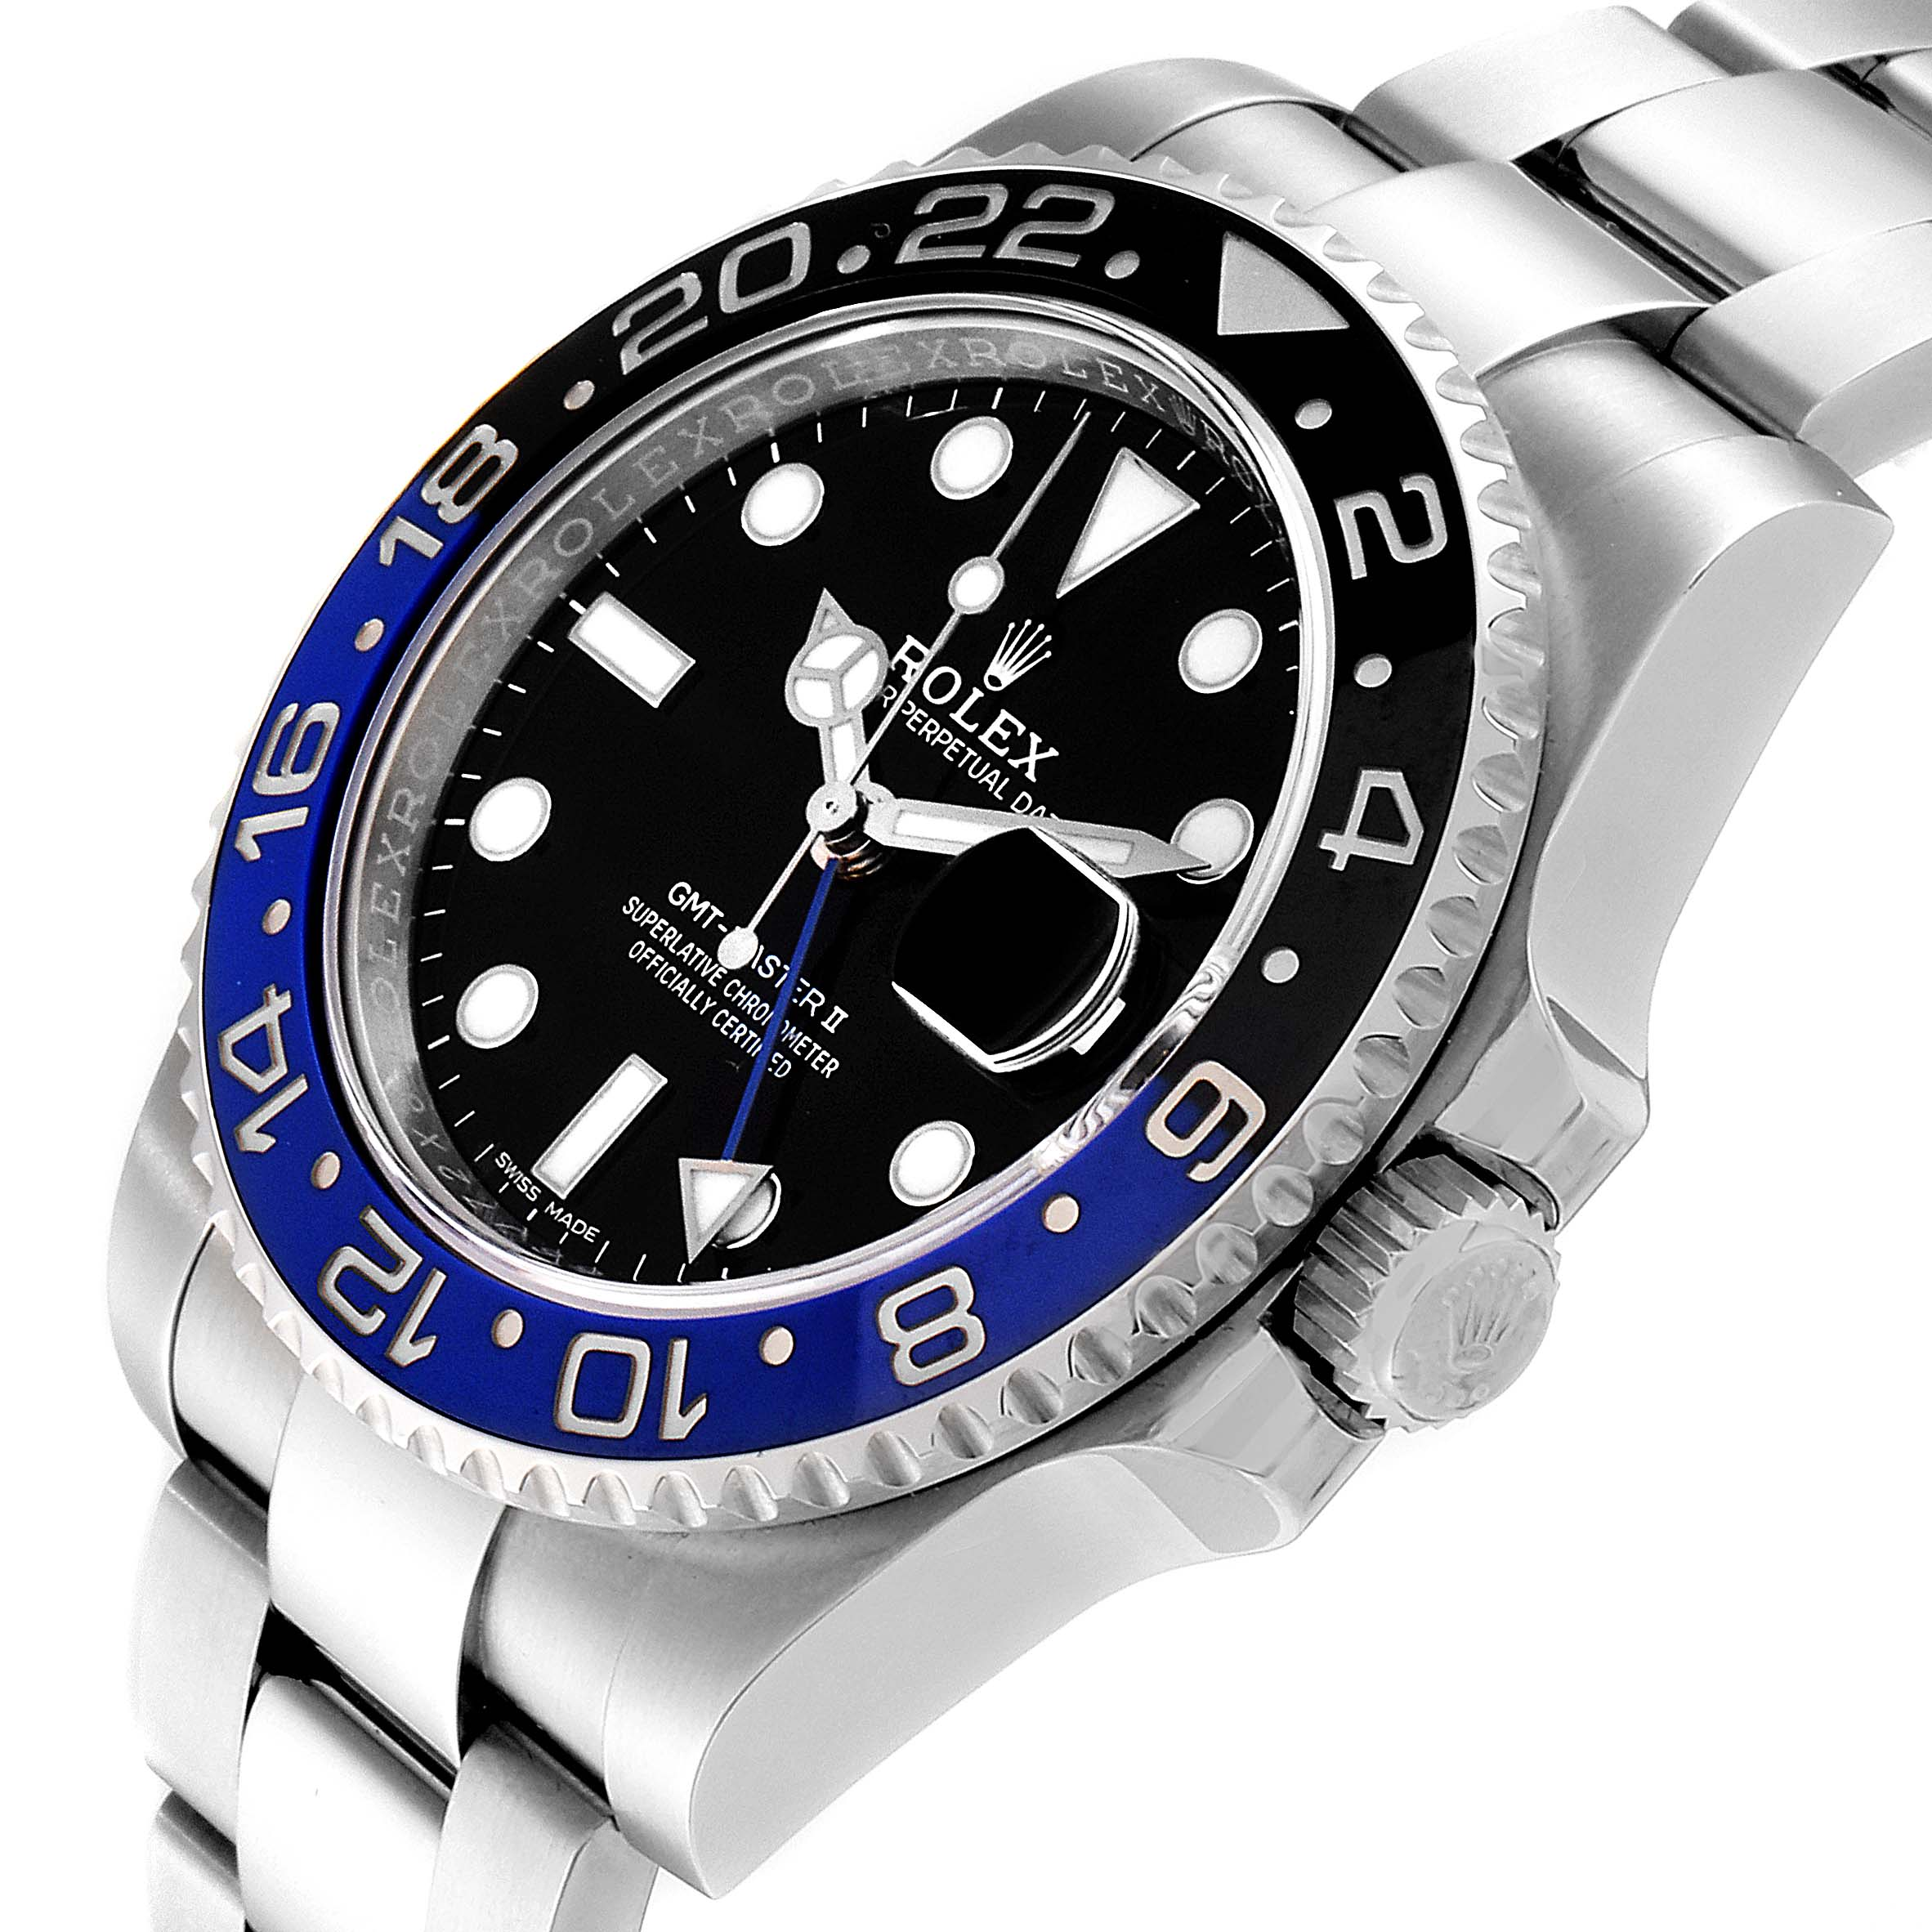 Rolex GMT Master II Black Blue Batman Steel Mens Watch 116710 Box Card SwissWatchExpo